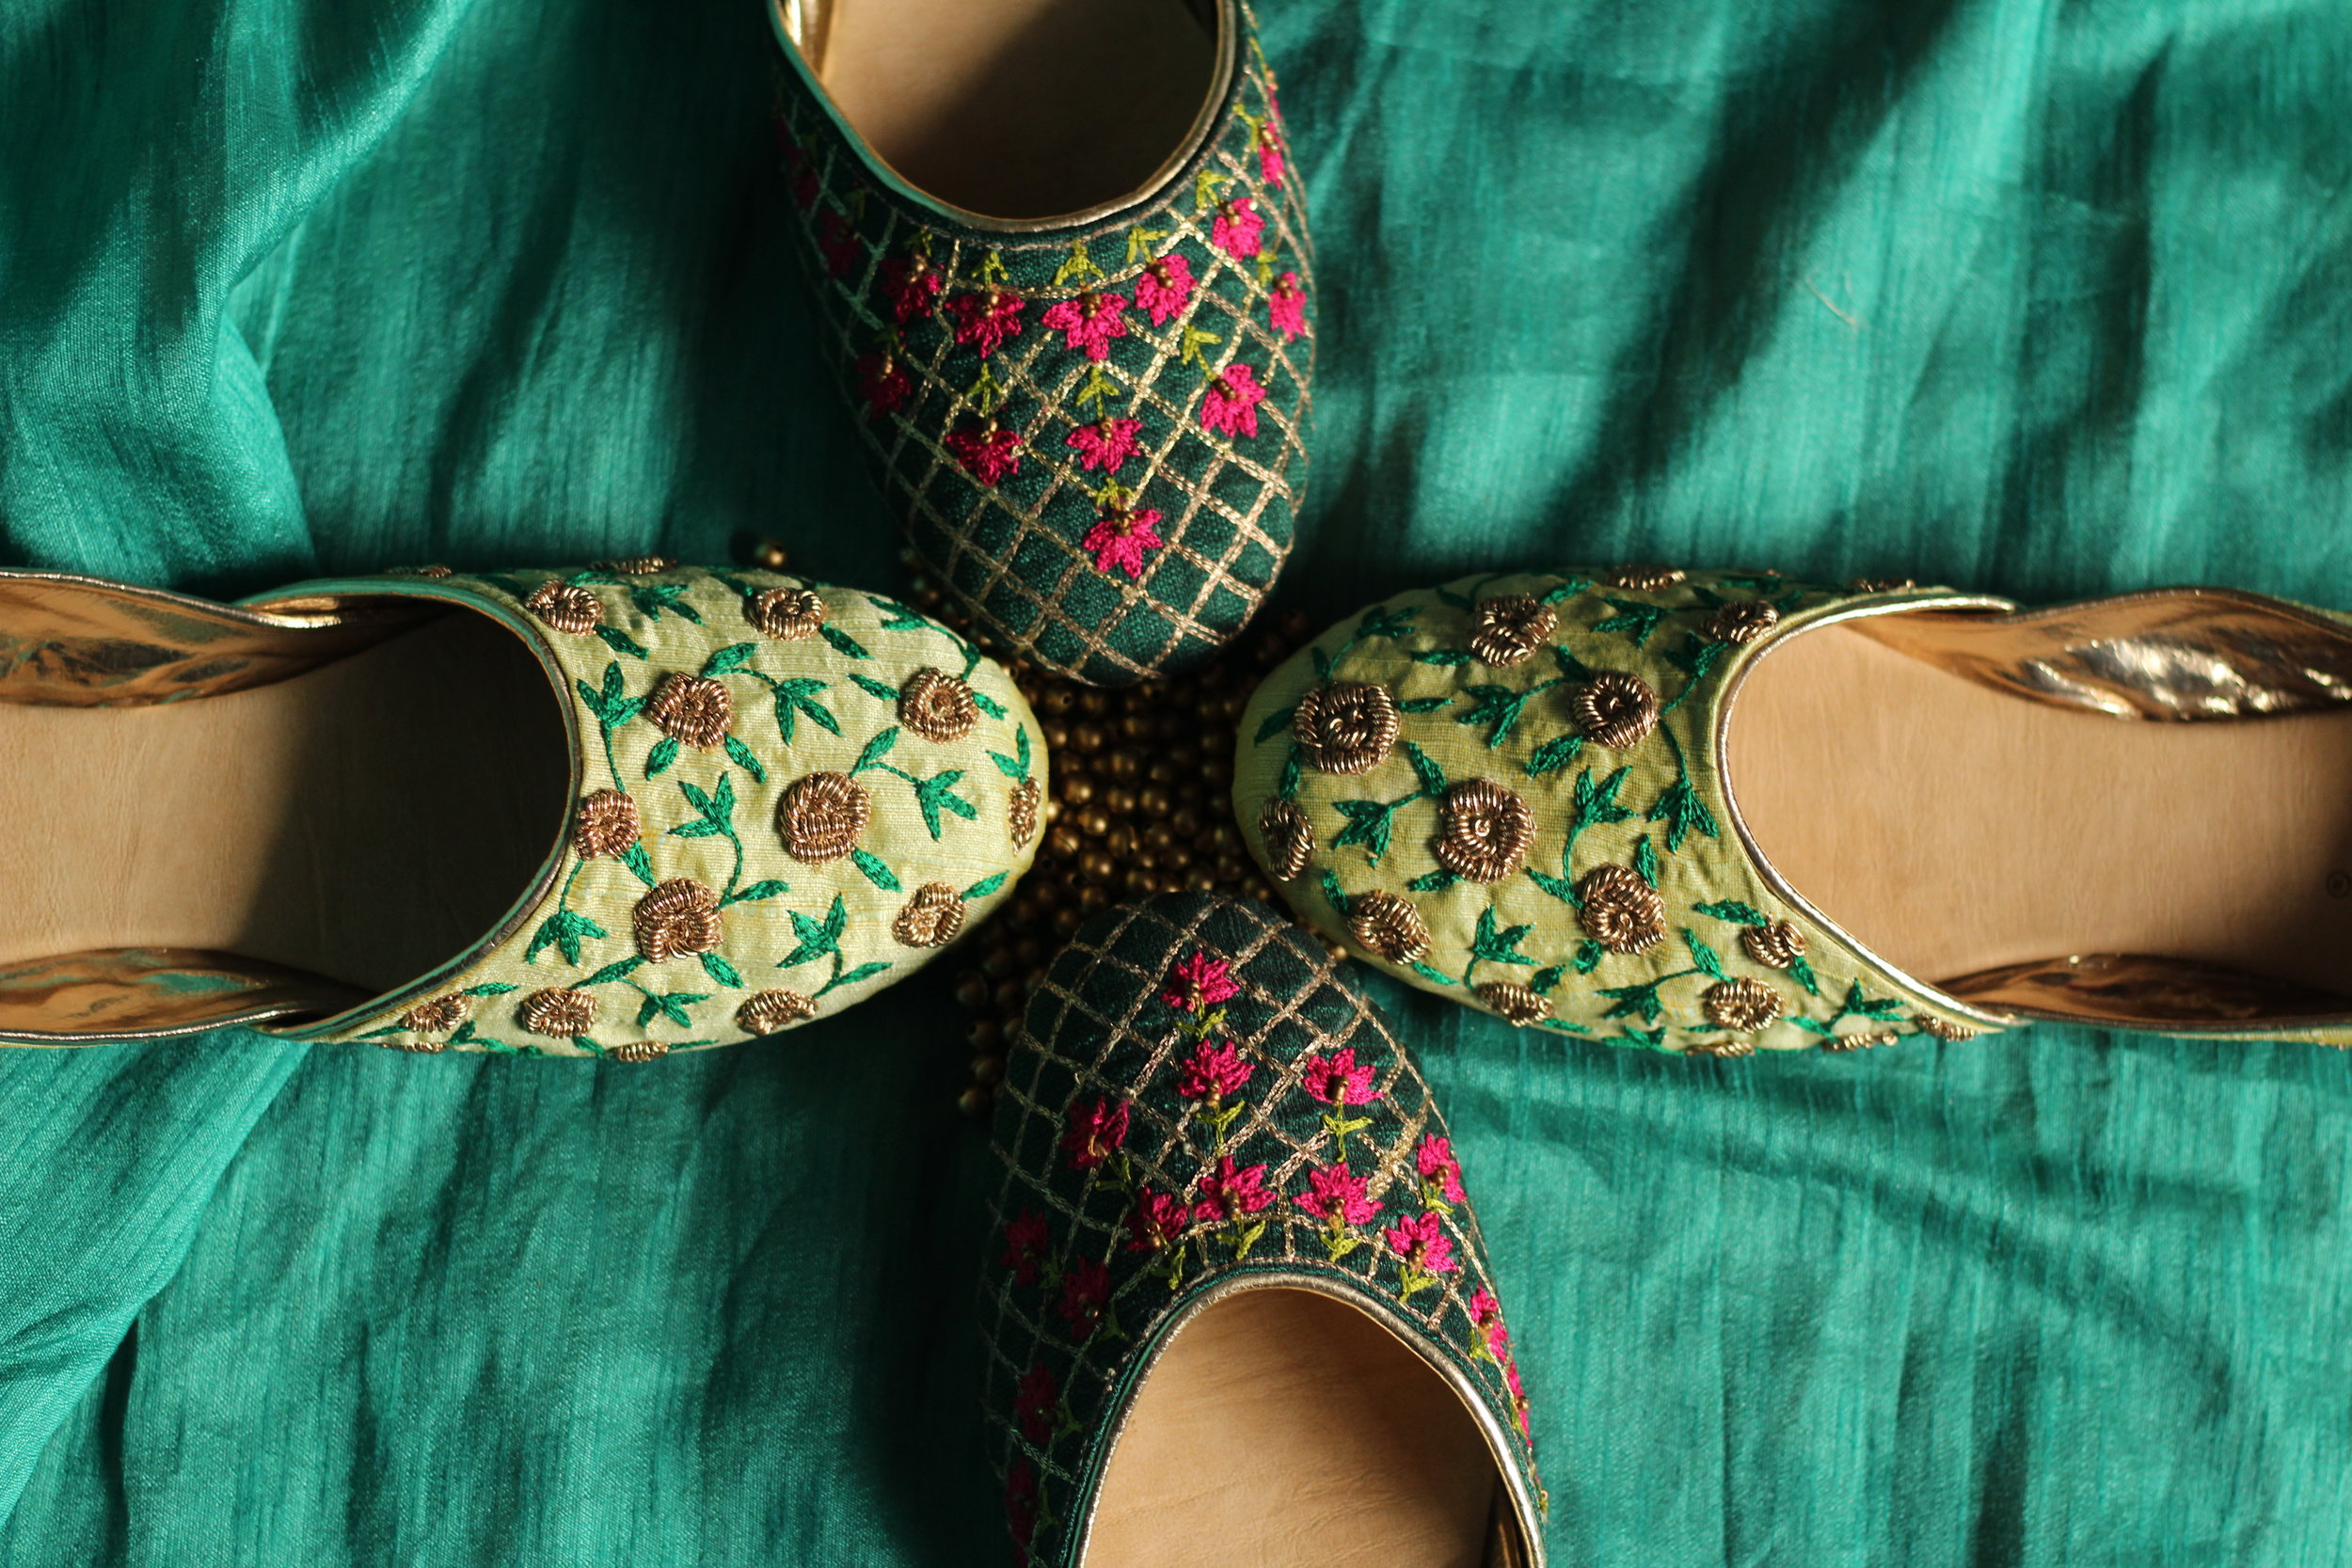 Juttis - These Indian classics are always in vogue and we have all kinds of embroidery in this style, with zardozi, resham and bead work in geometric and floral motifs.